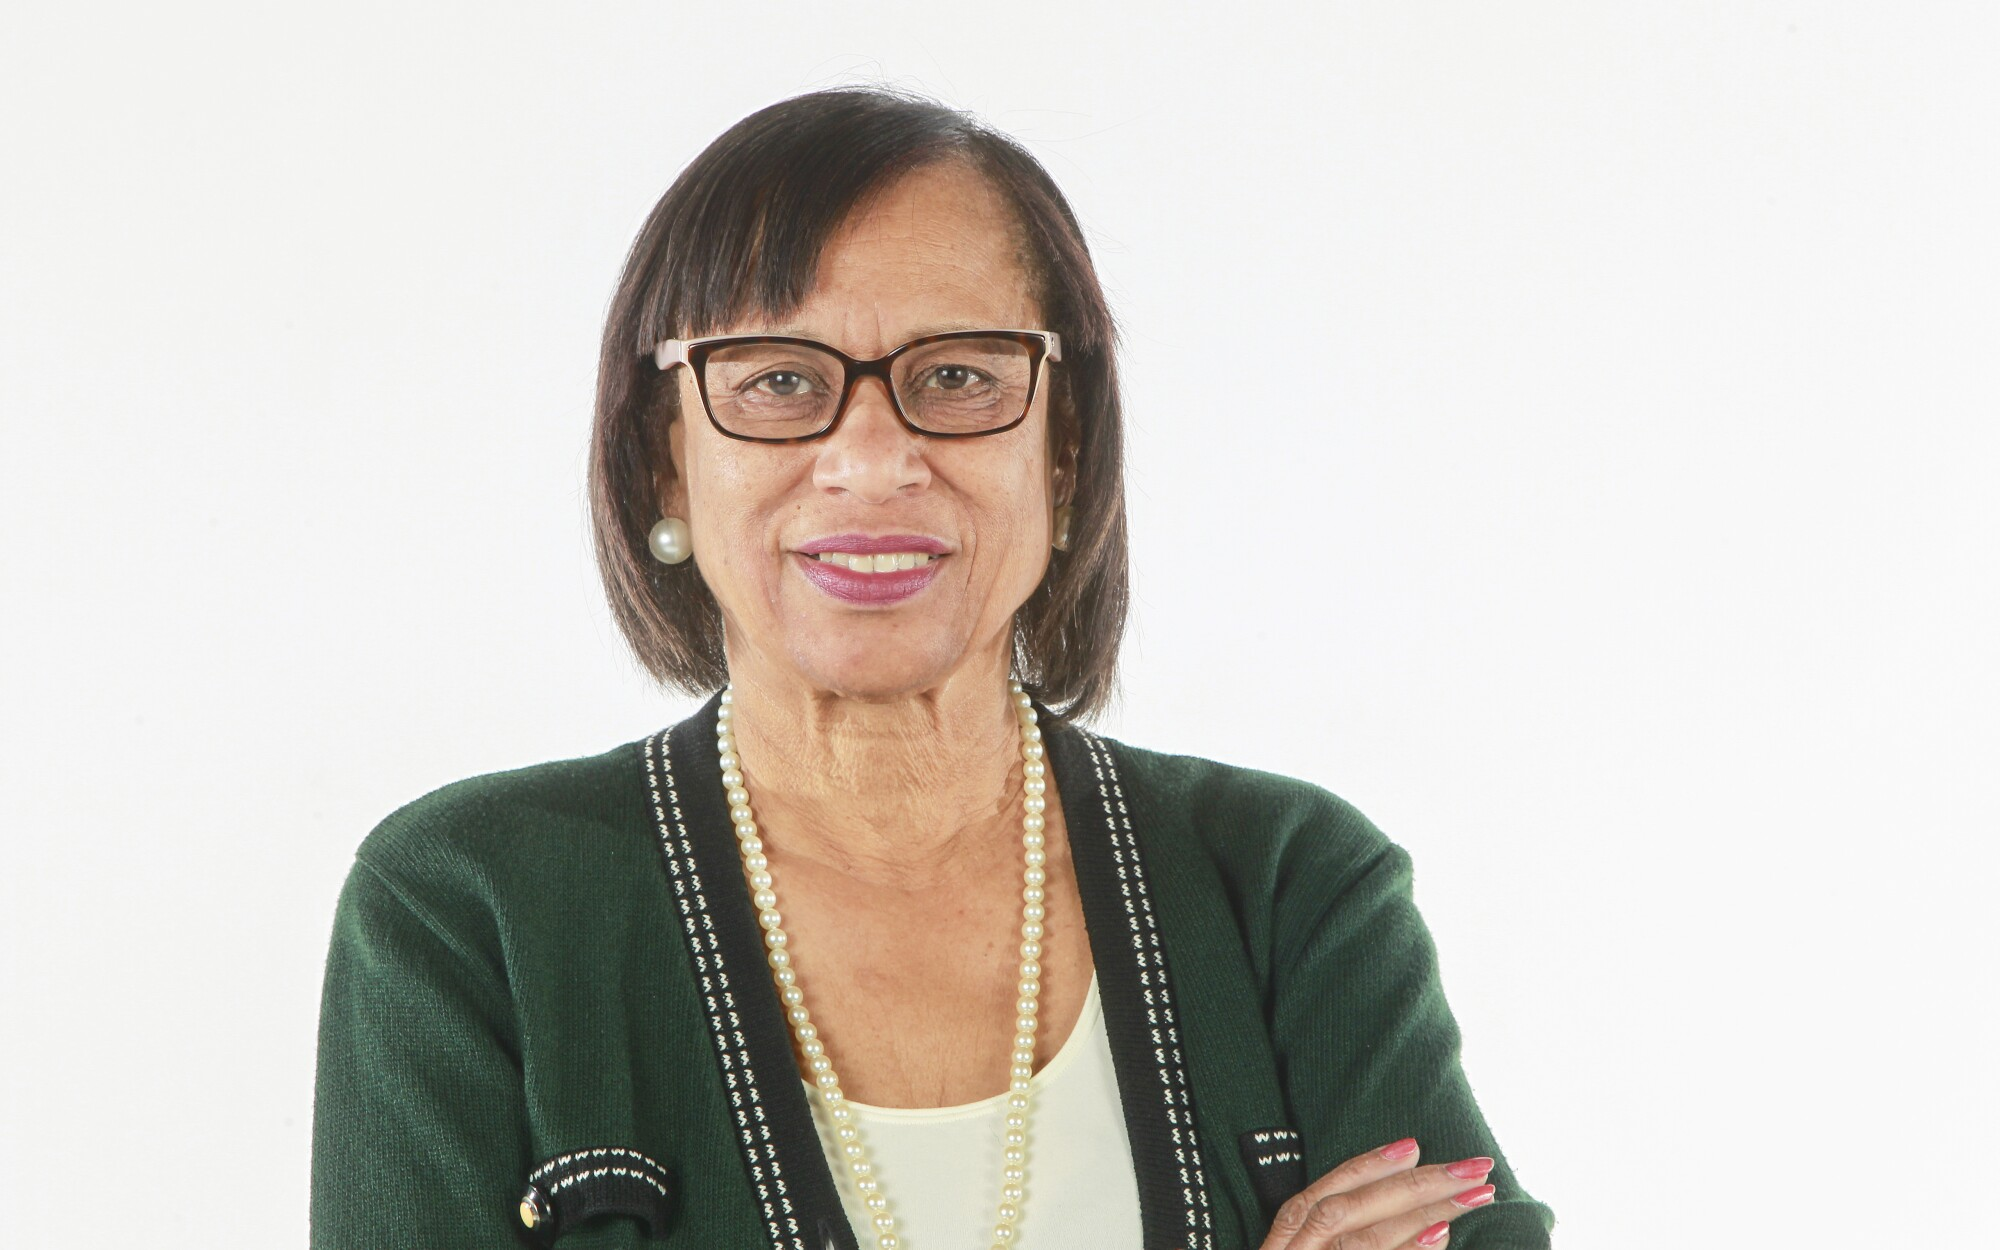 Sharon Whitehurst-Payne, a candidate for San Diego school board District E.